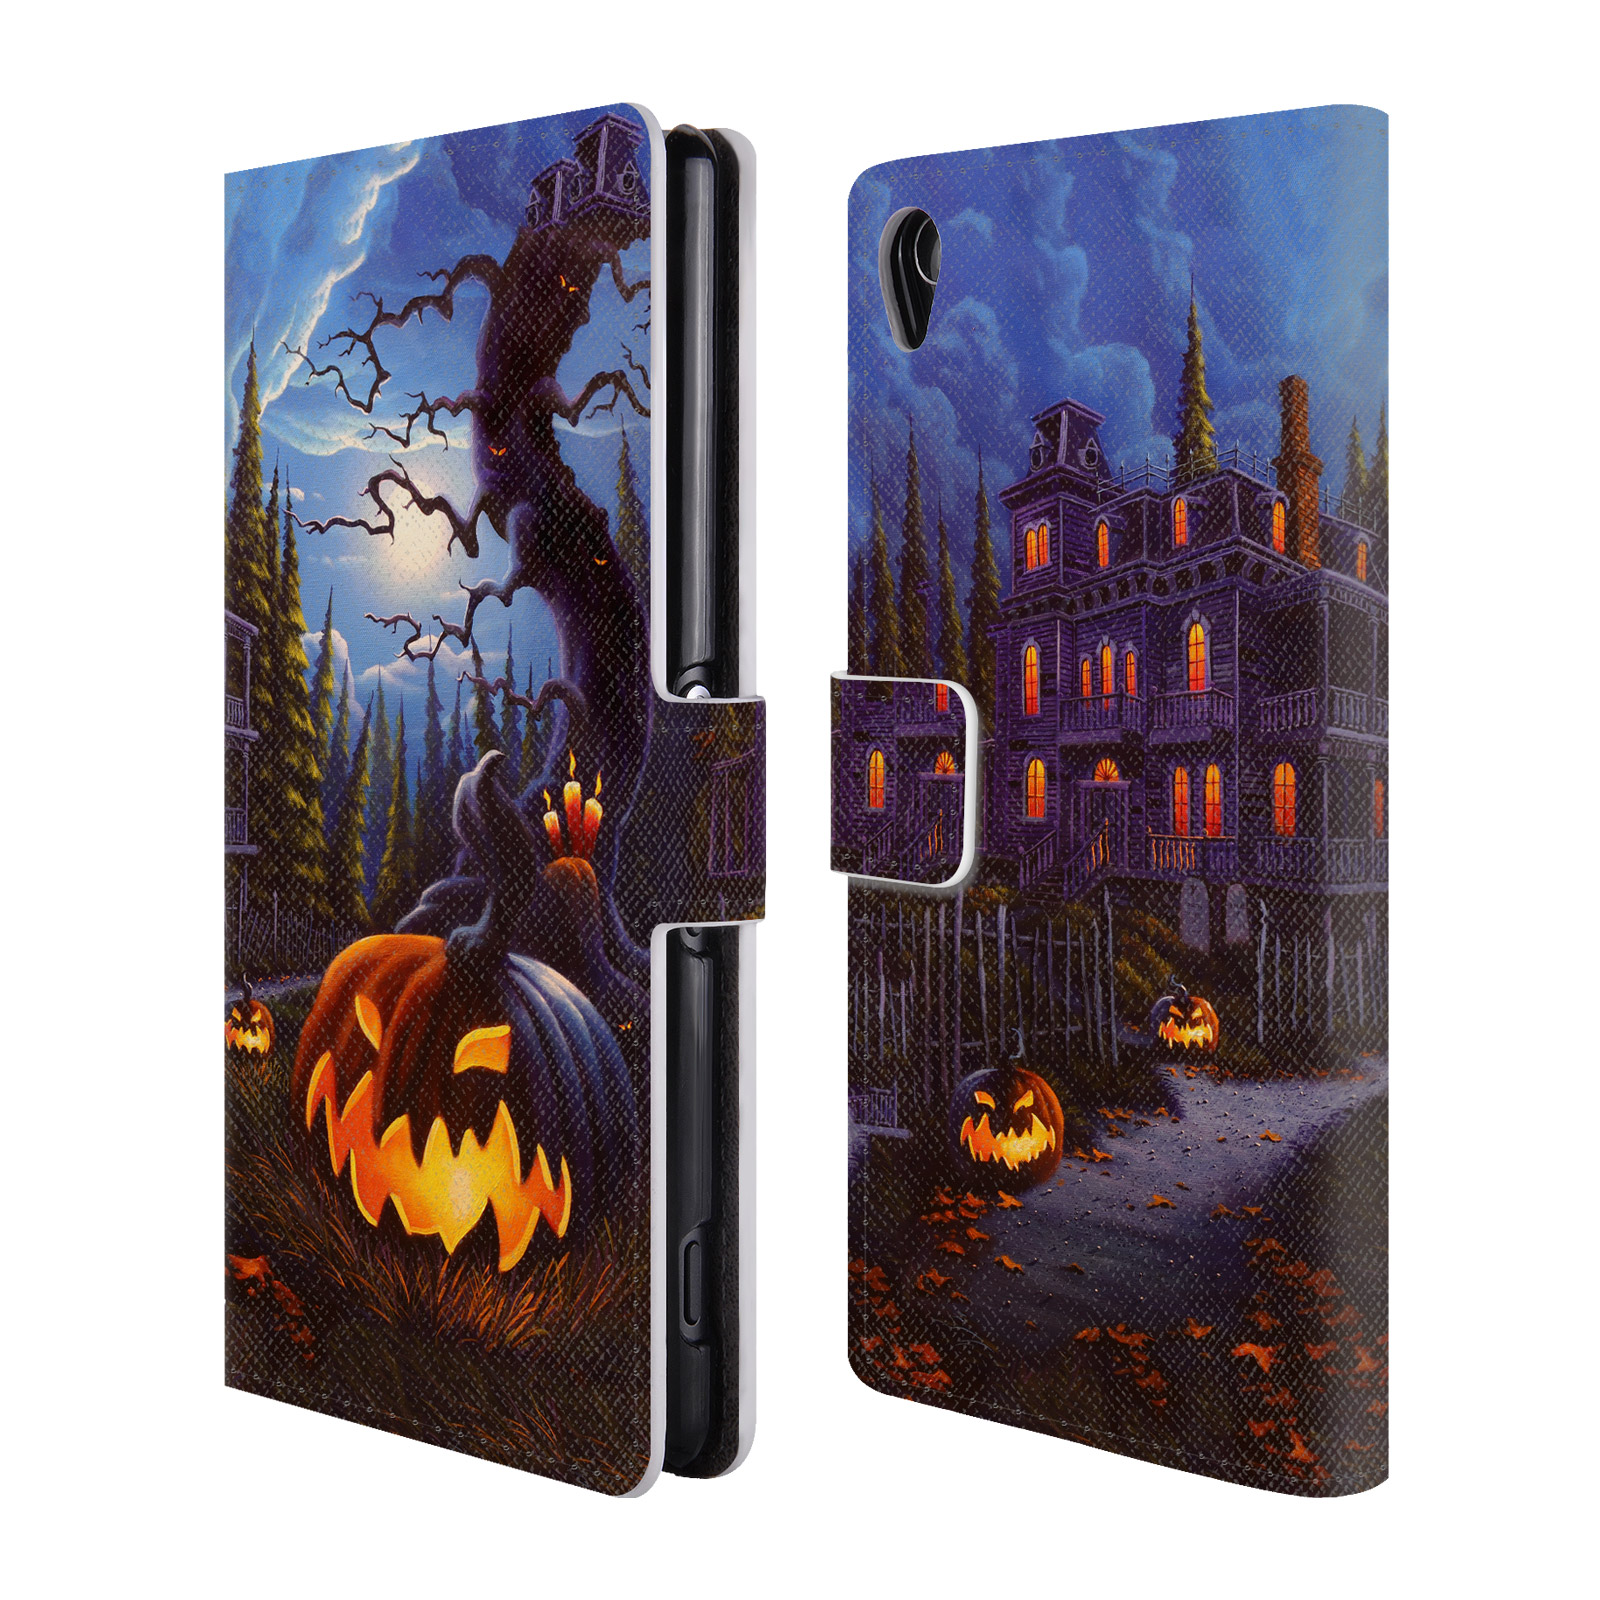 OFFICIAL-GENO-PEOPLES-ART-HALLOWEEN-LEATHER-BOOK-WALLET-CASE-FOR-SONY-PHONES-1